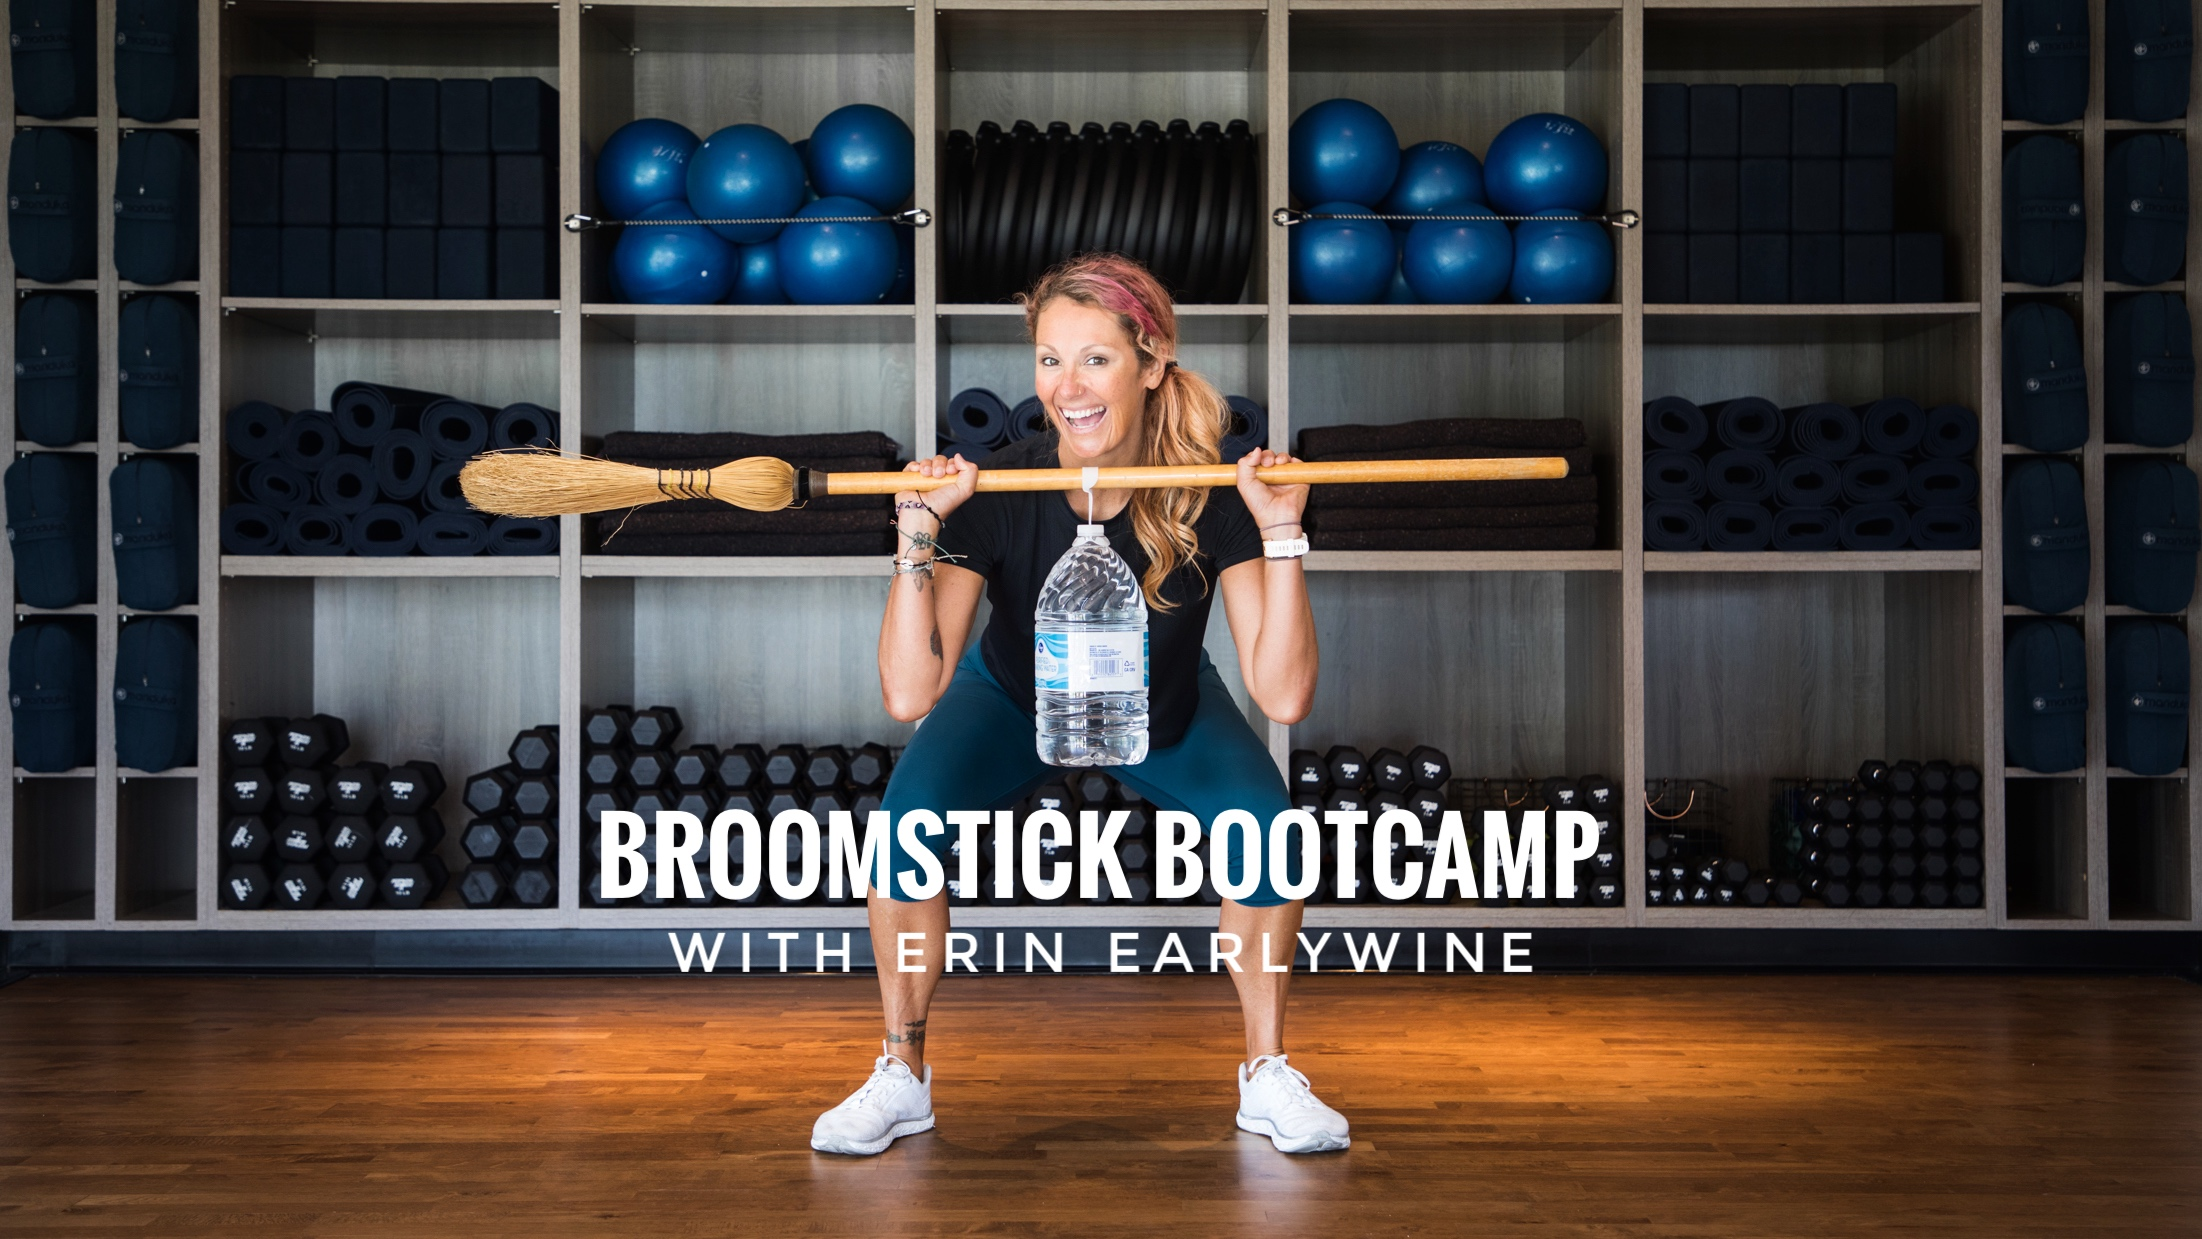 Broomstick Bootcamp with Erin Earlywine